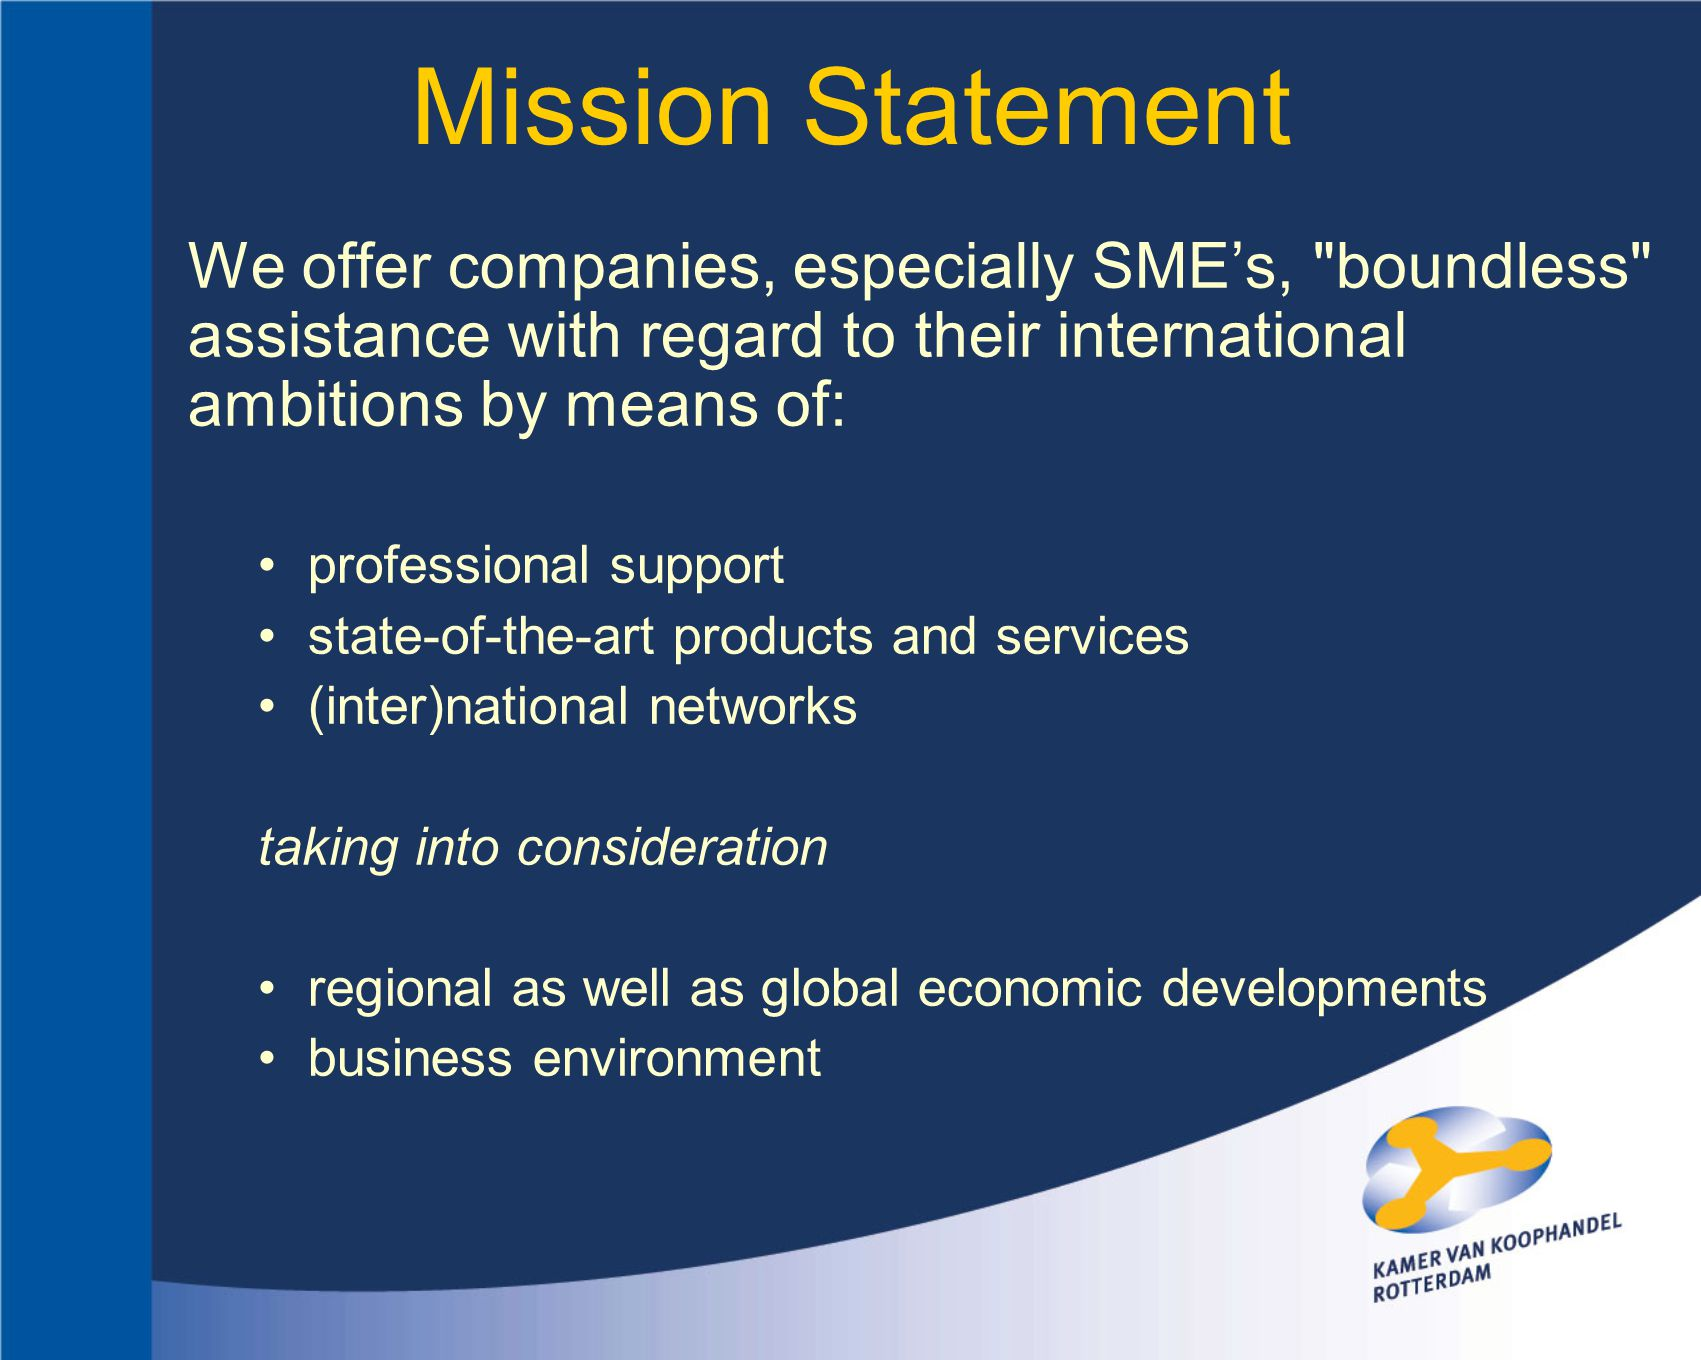 We offer companies, especially SME's, boundless assistance with regard to their international ambitions by means of: professional support state-of-the-art products and services (inter)national networks taking into consideration regional as well as global economic developments business environment Mission Statement